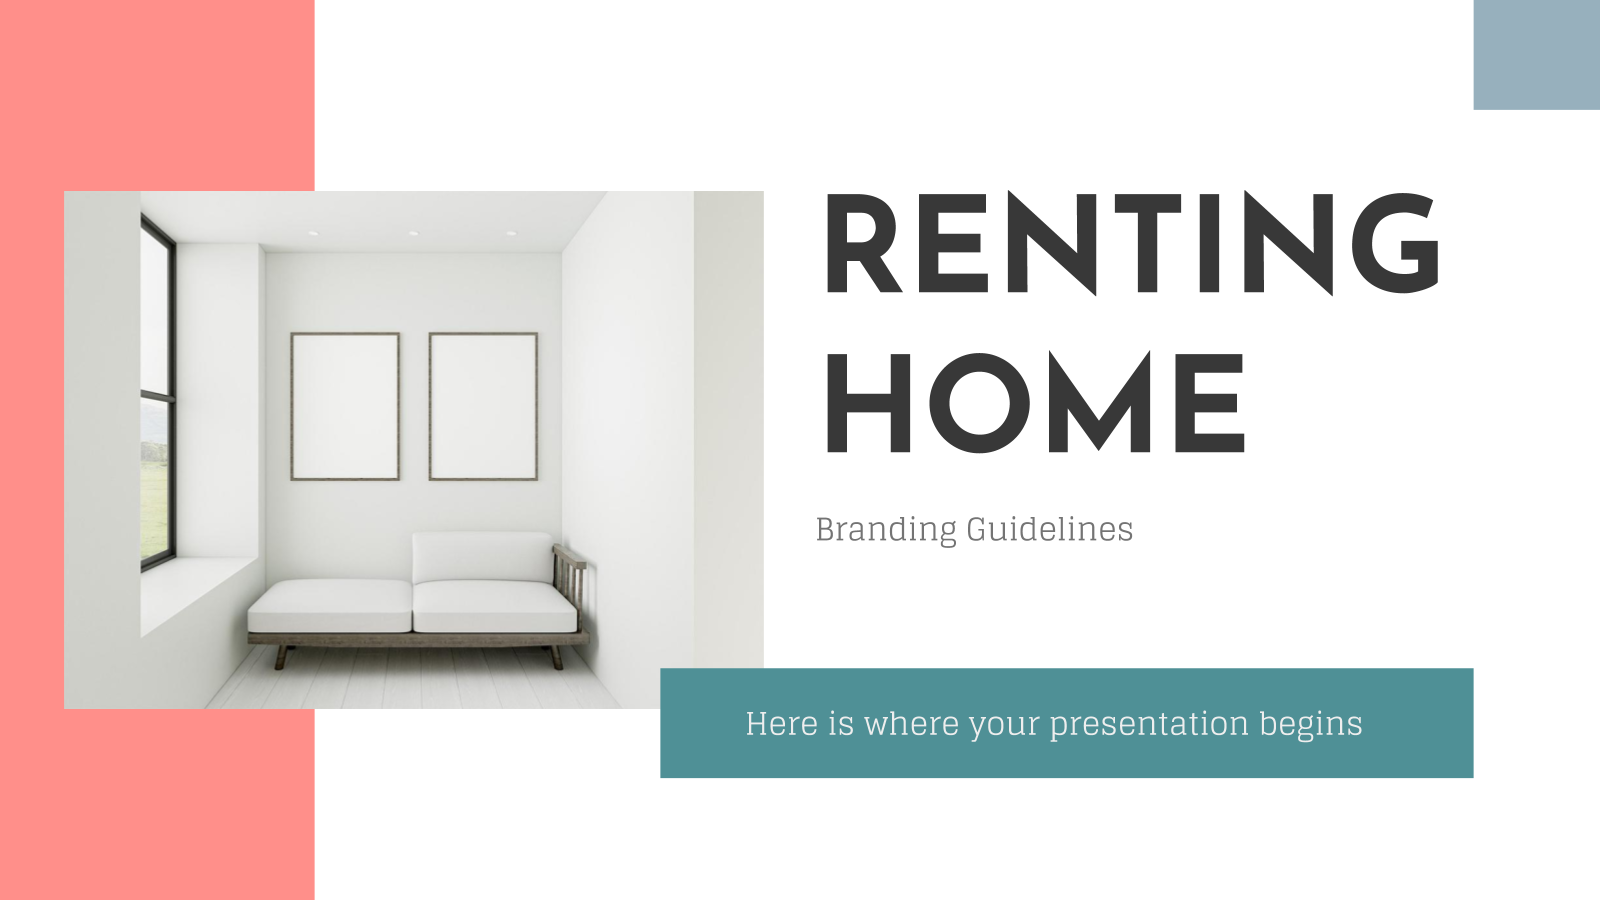 Renting Home Brand Guidelines presentation template